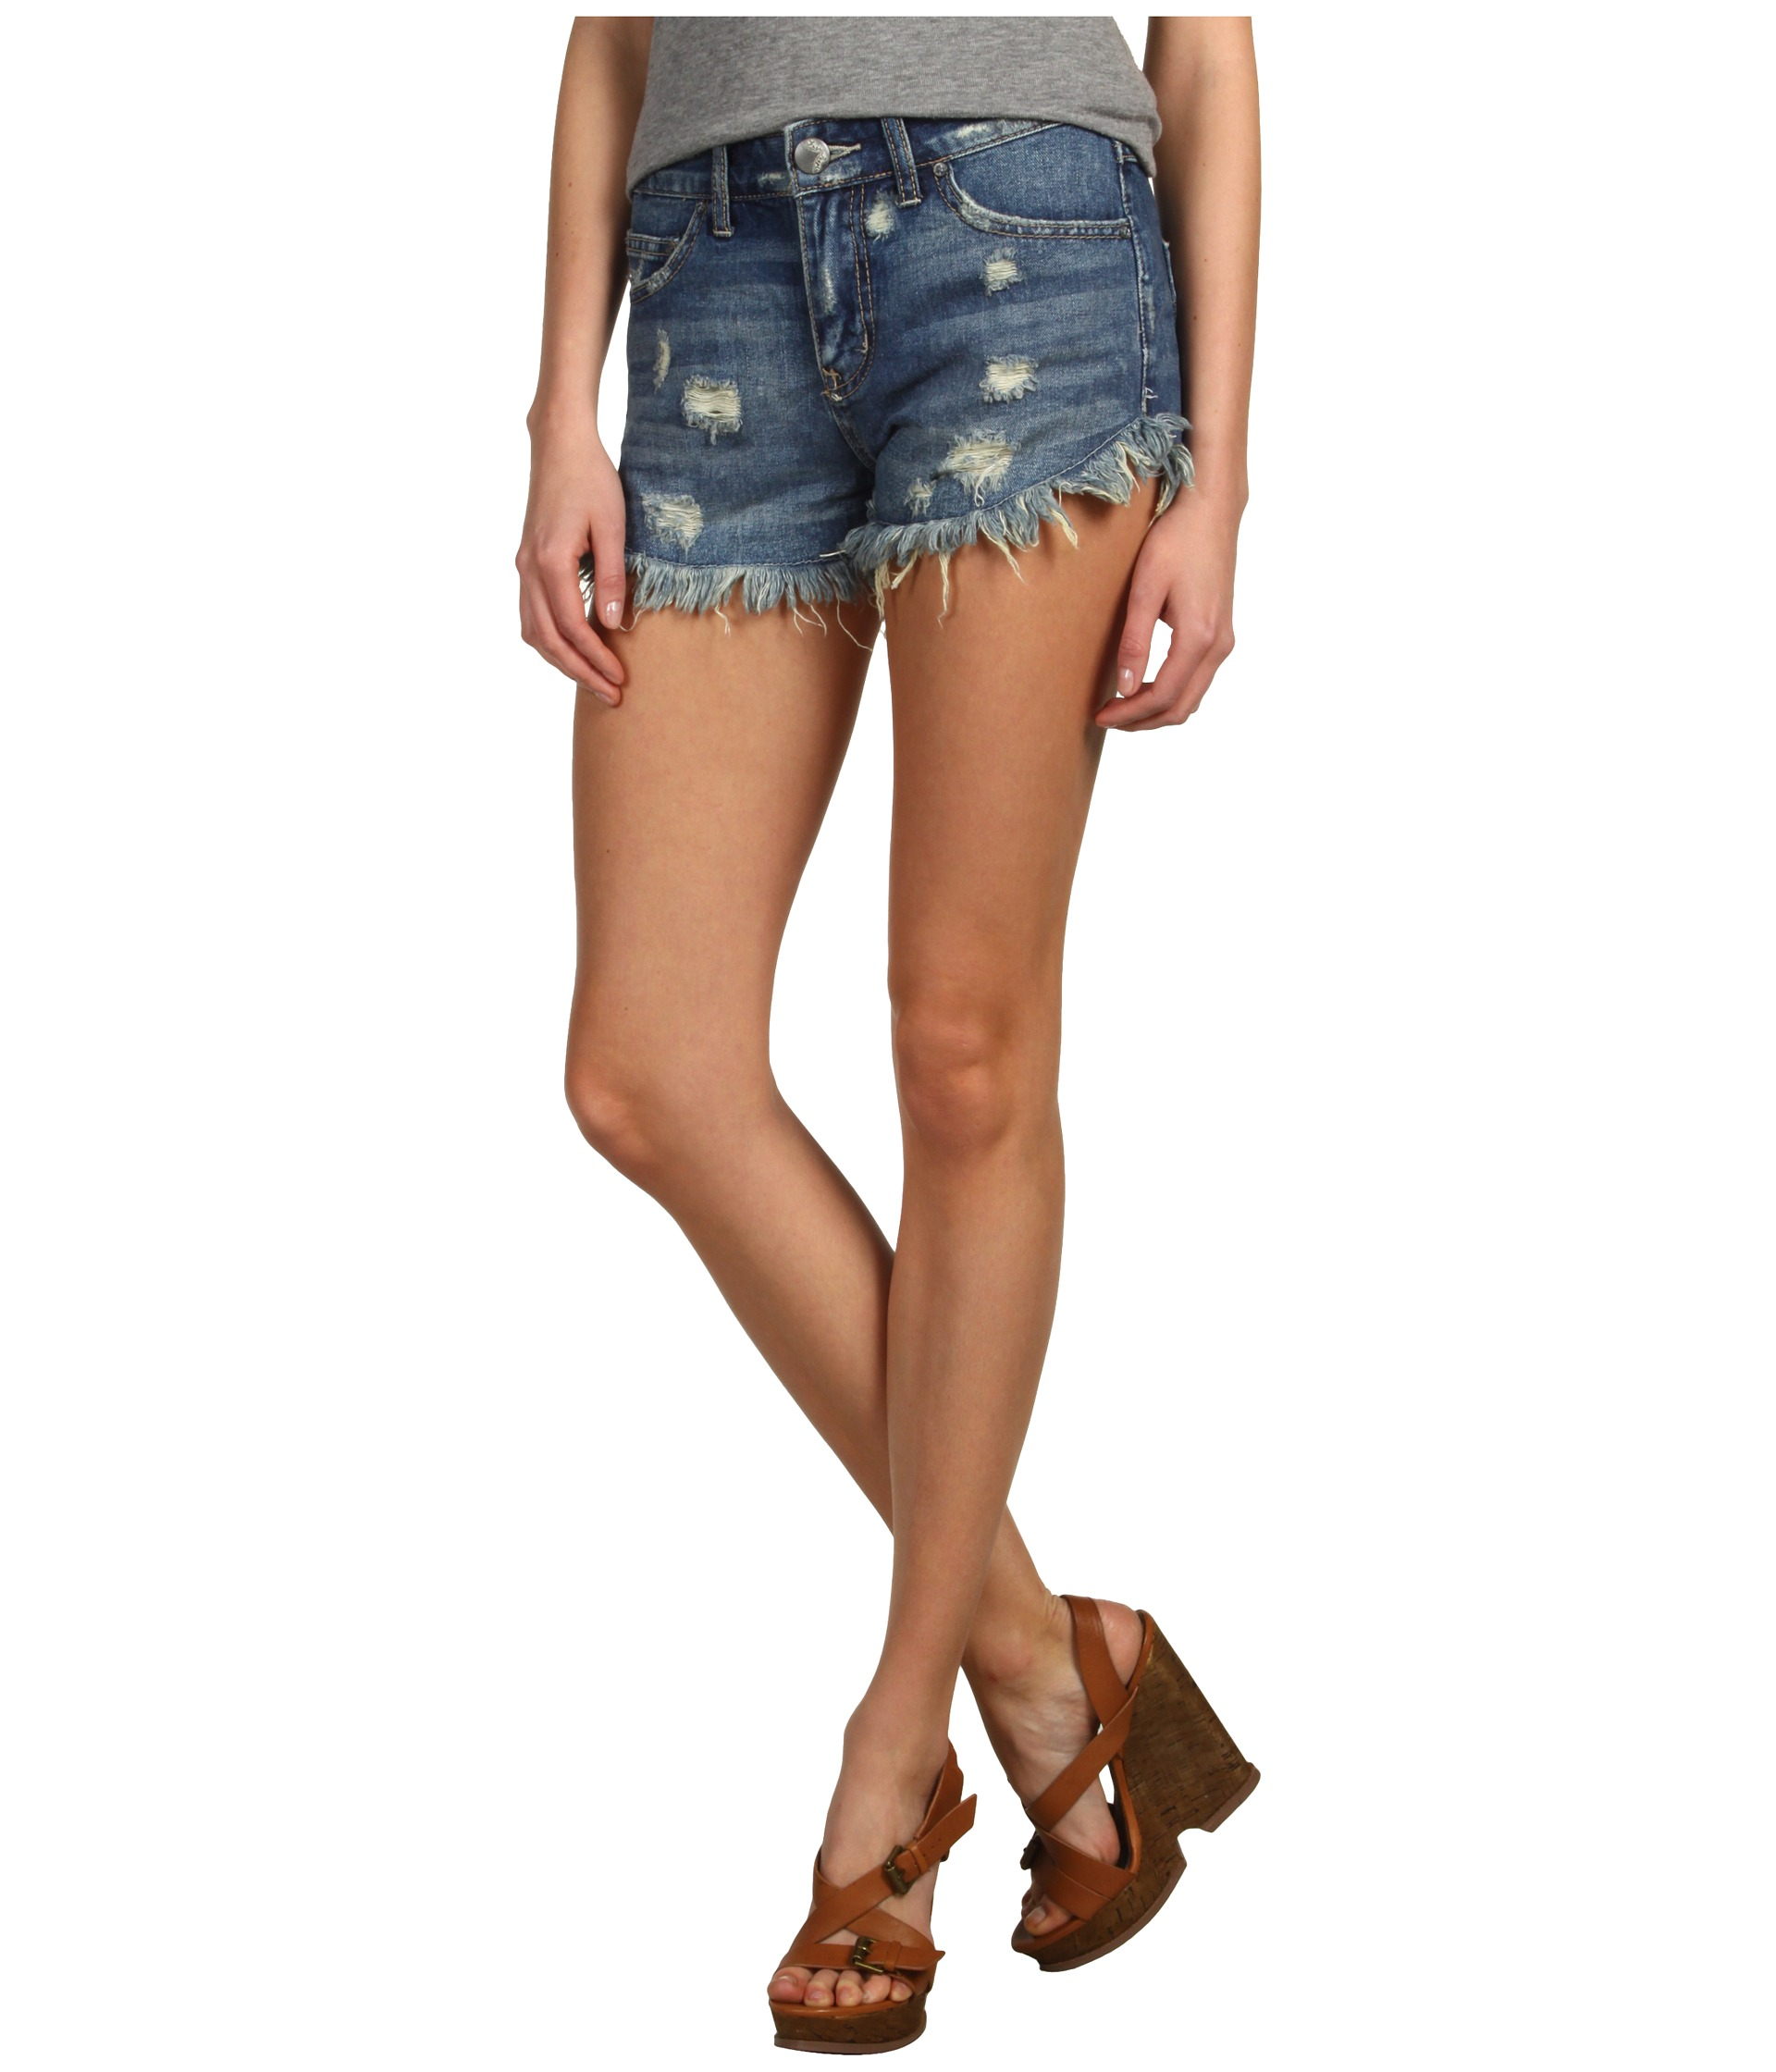 Free People Dolphin Hem Denim Cutoff Short | Shipped Free at Zappos